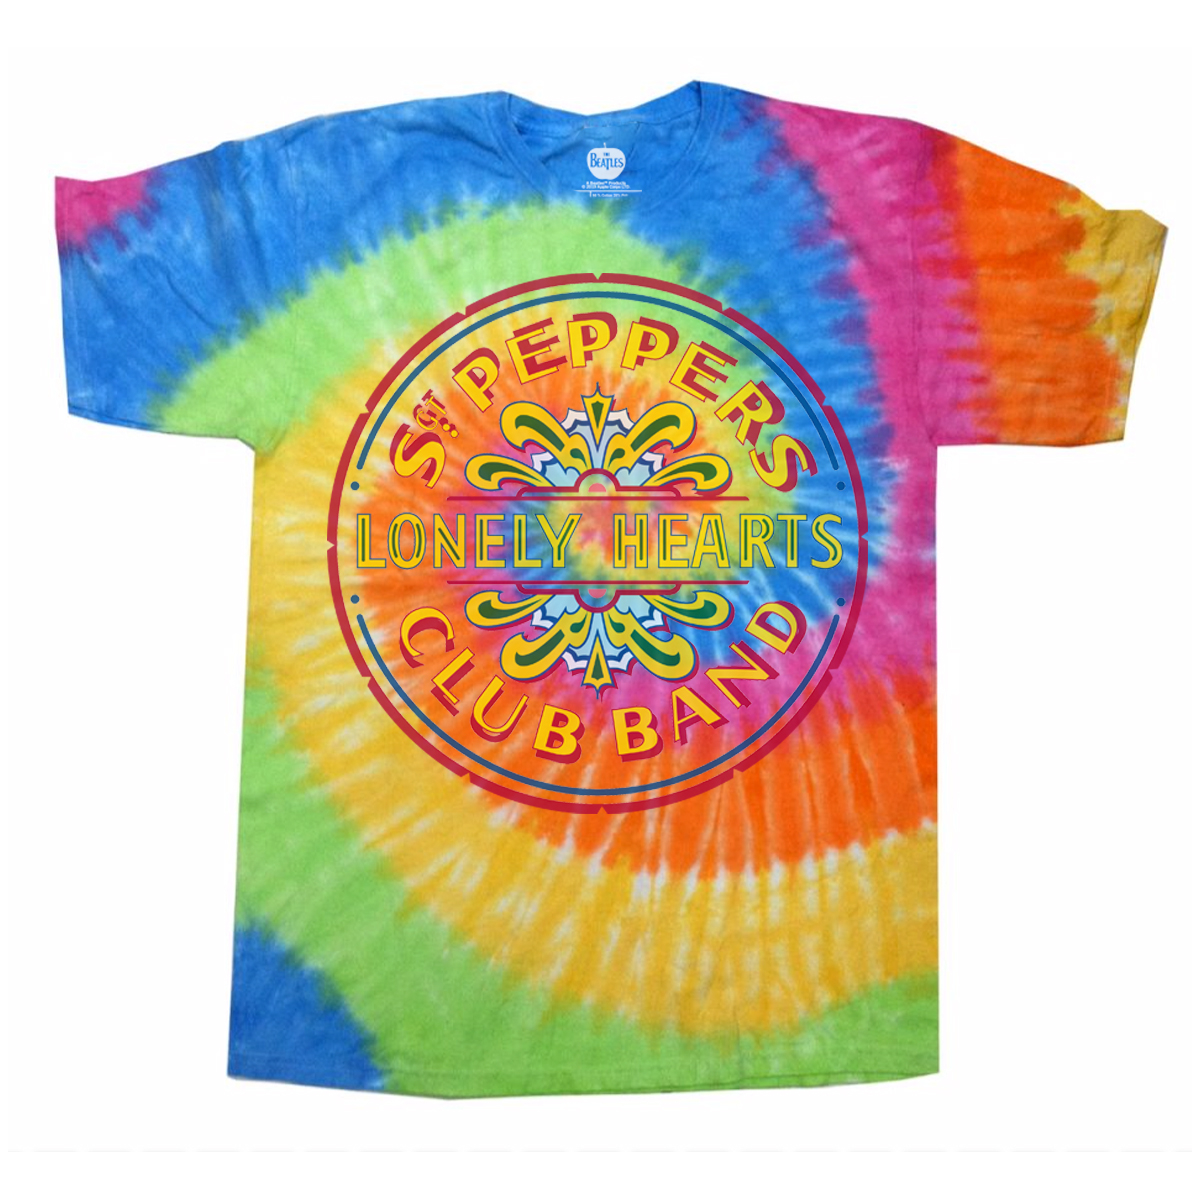 Sgt. Pepper's Lonely Hearts Club Band Rainbow Tie-Dye T-Shirt